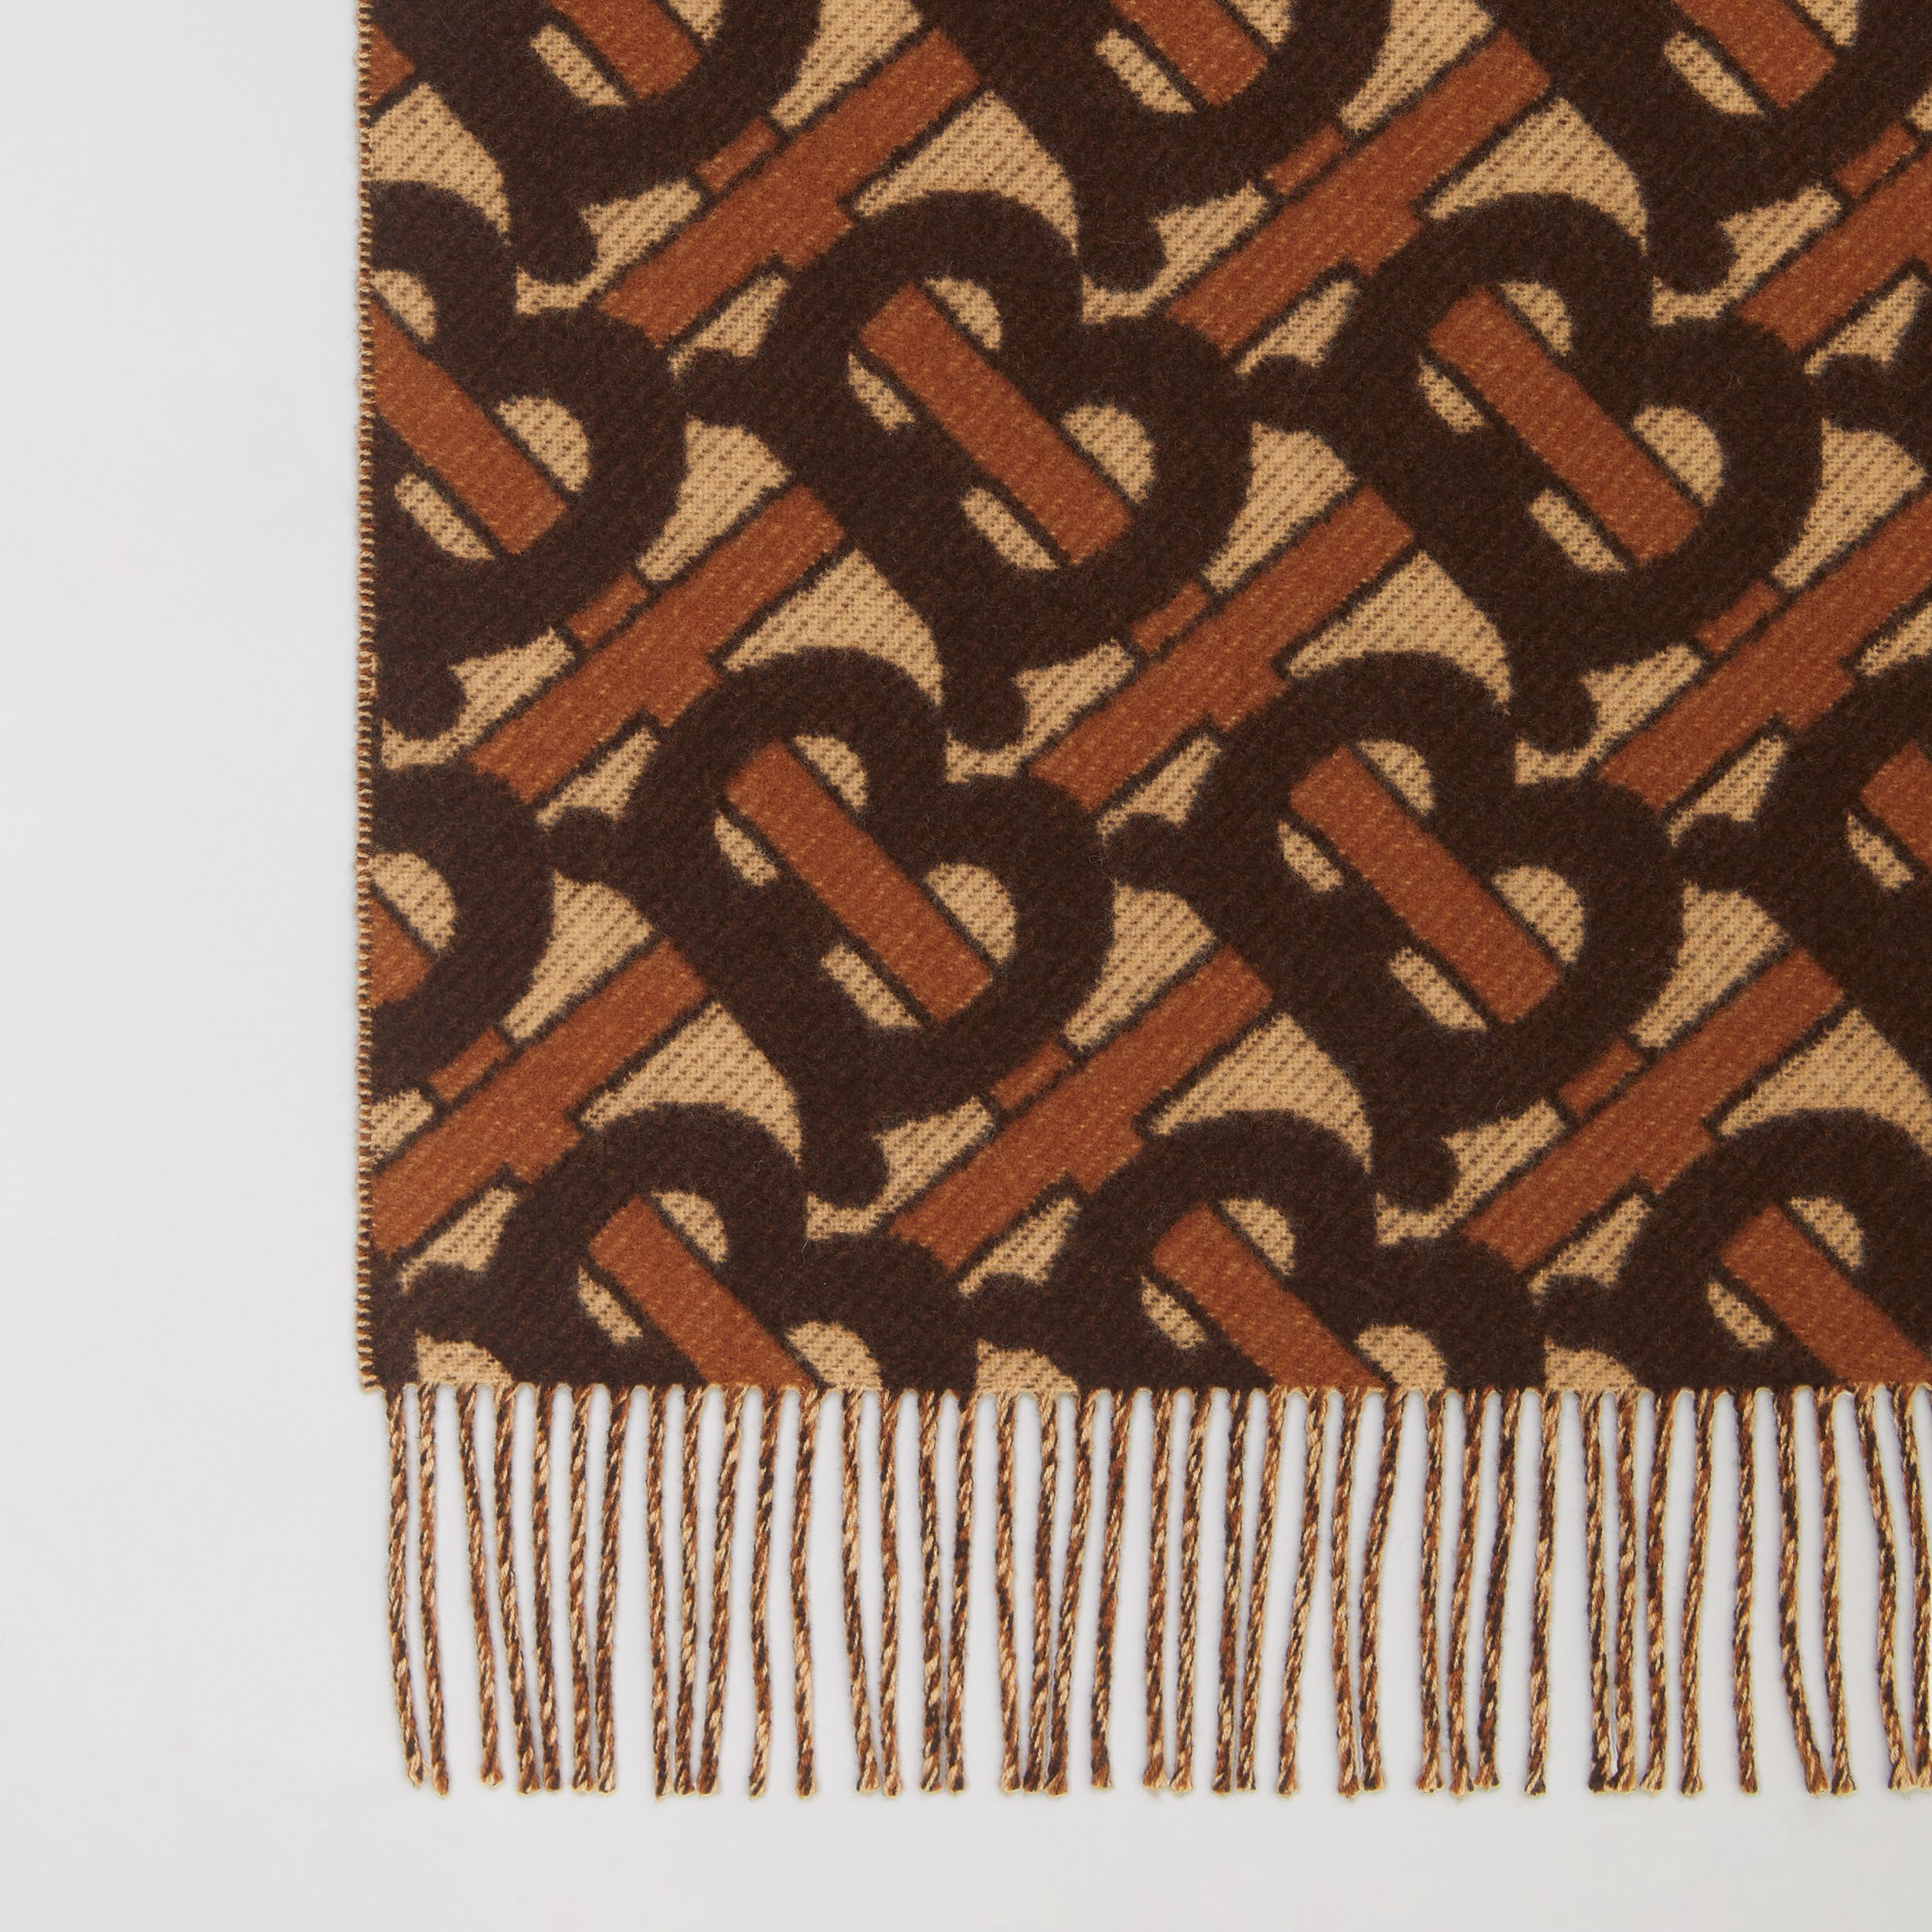 Monogram Merino Wool Cashmere Jacquard Blanket in Deep Brown | Burberry - 2